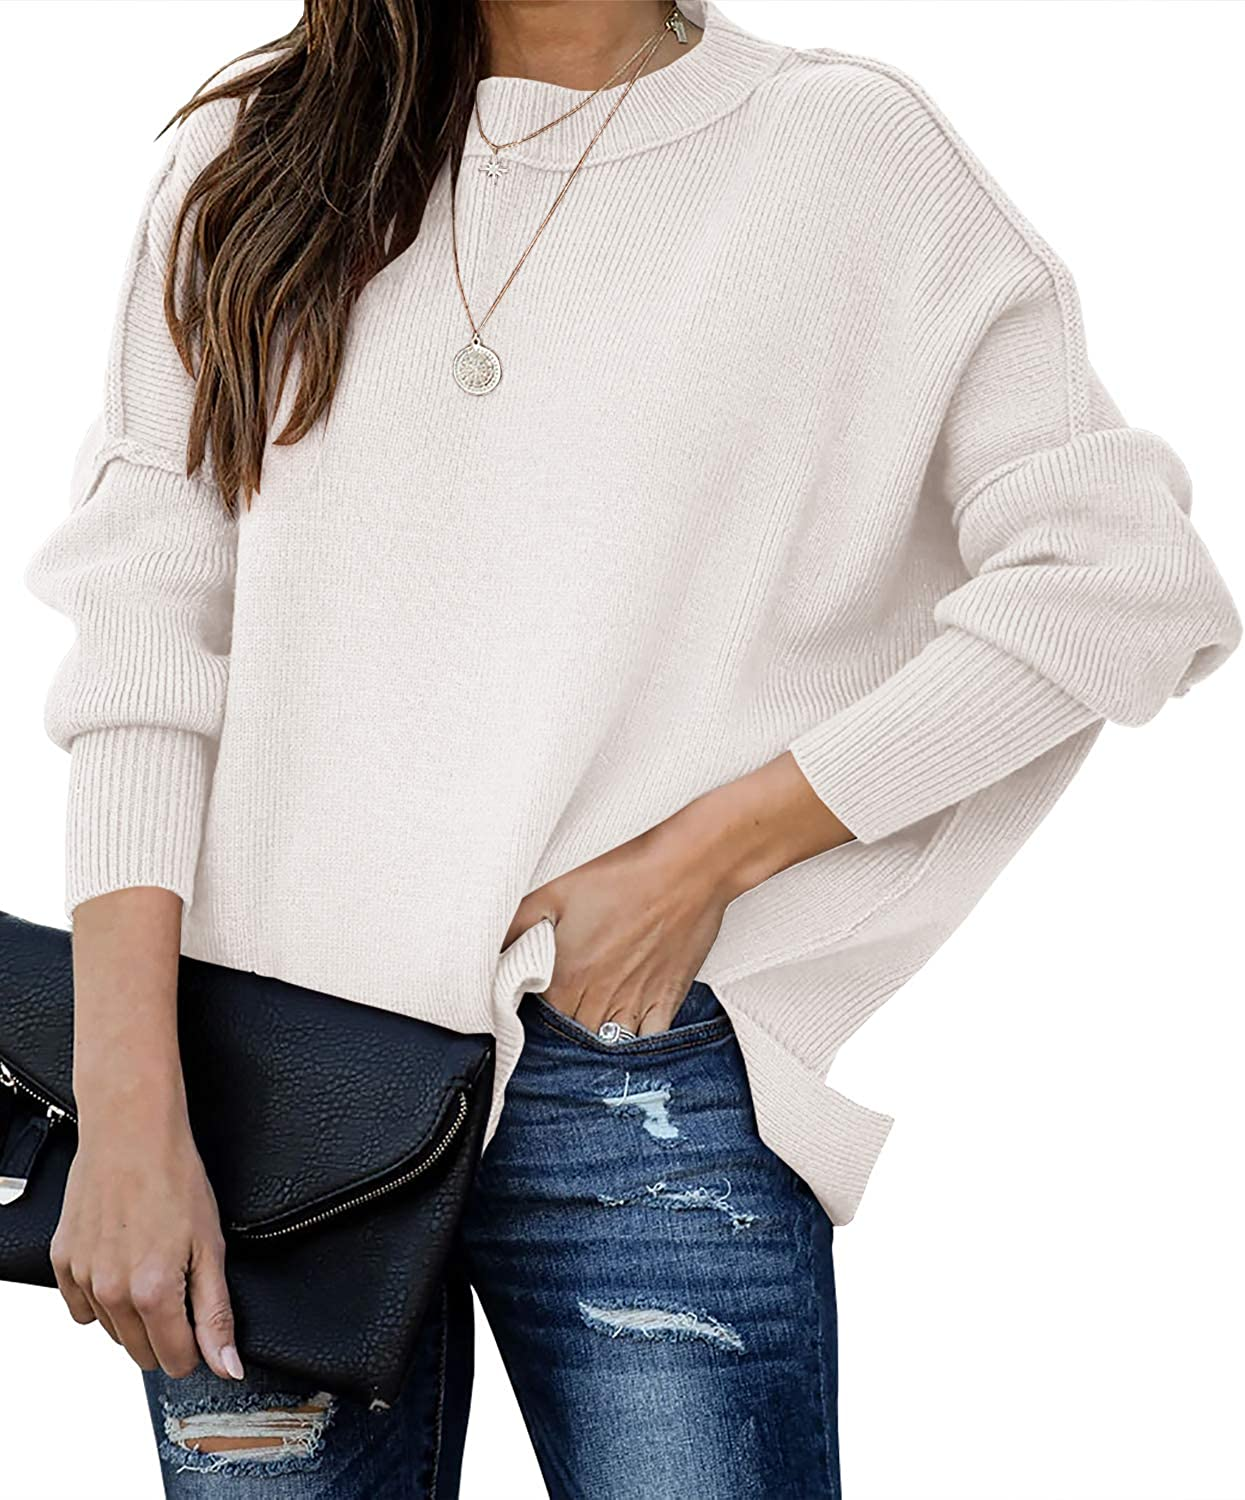 Max 84% OFF Seraih Womens Batwing Sleeve Pullover Side Split Oversized Solid low-pricing